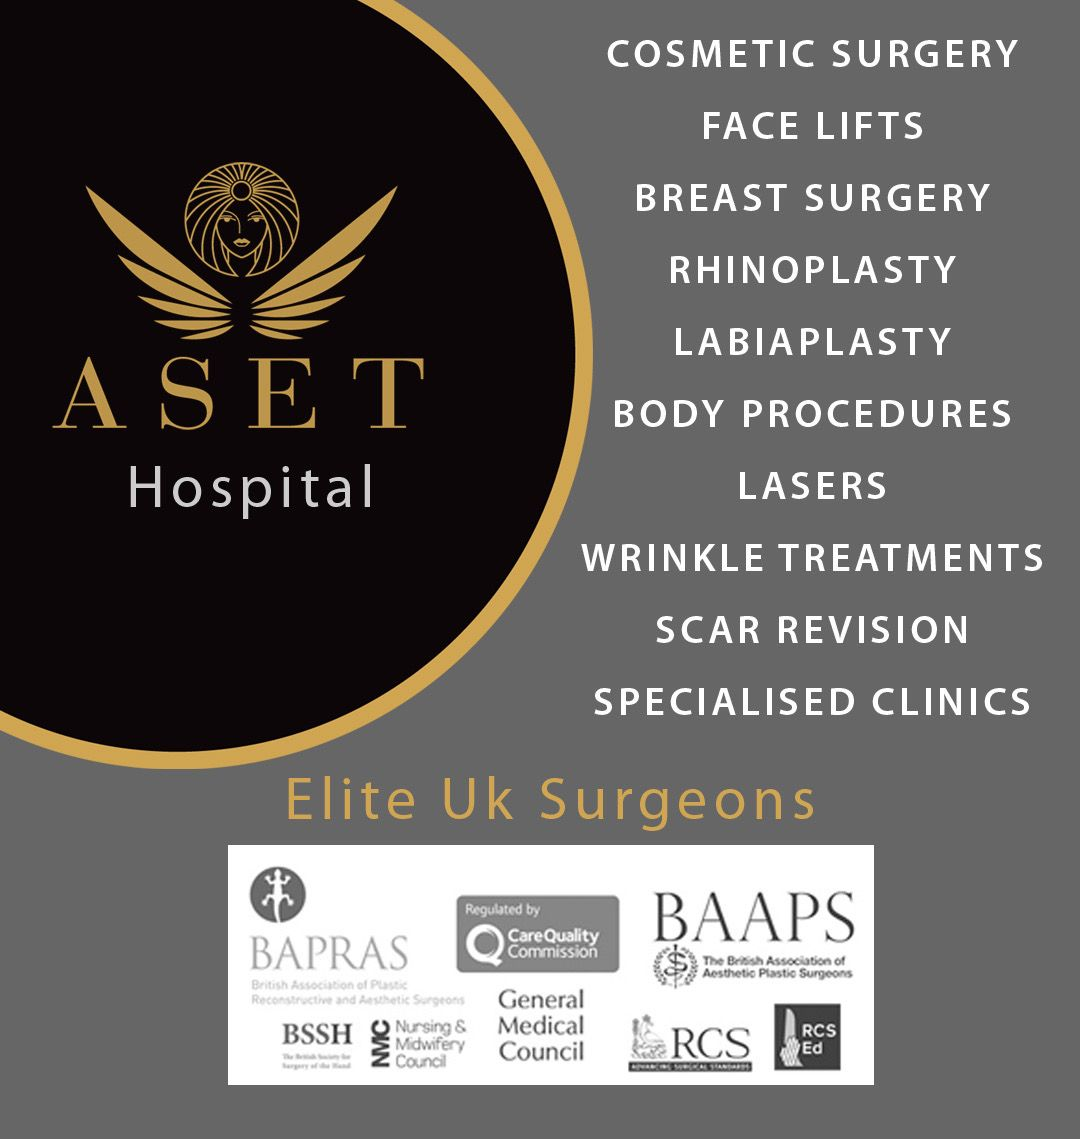 Aset Hospital Cosmetic Surgery Led By Elite Uk Surgeons Situated In Liverpool Uk Cosmetic Surgery Laser Wrinkle Treatment Wrinkle Treatment